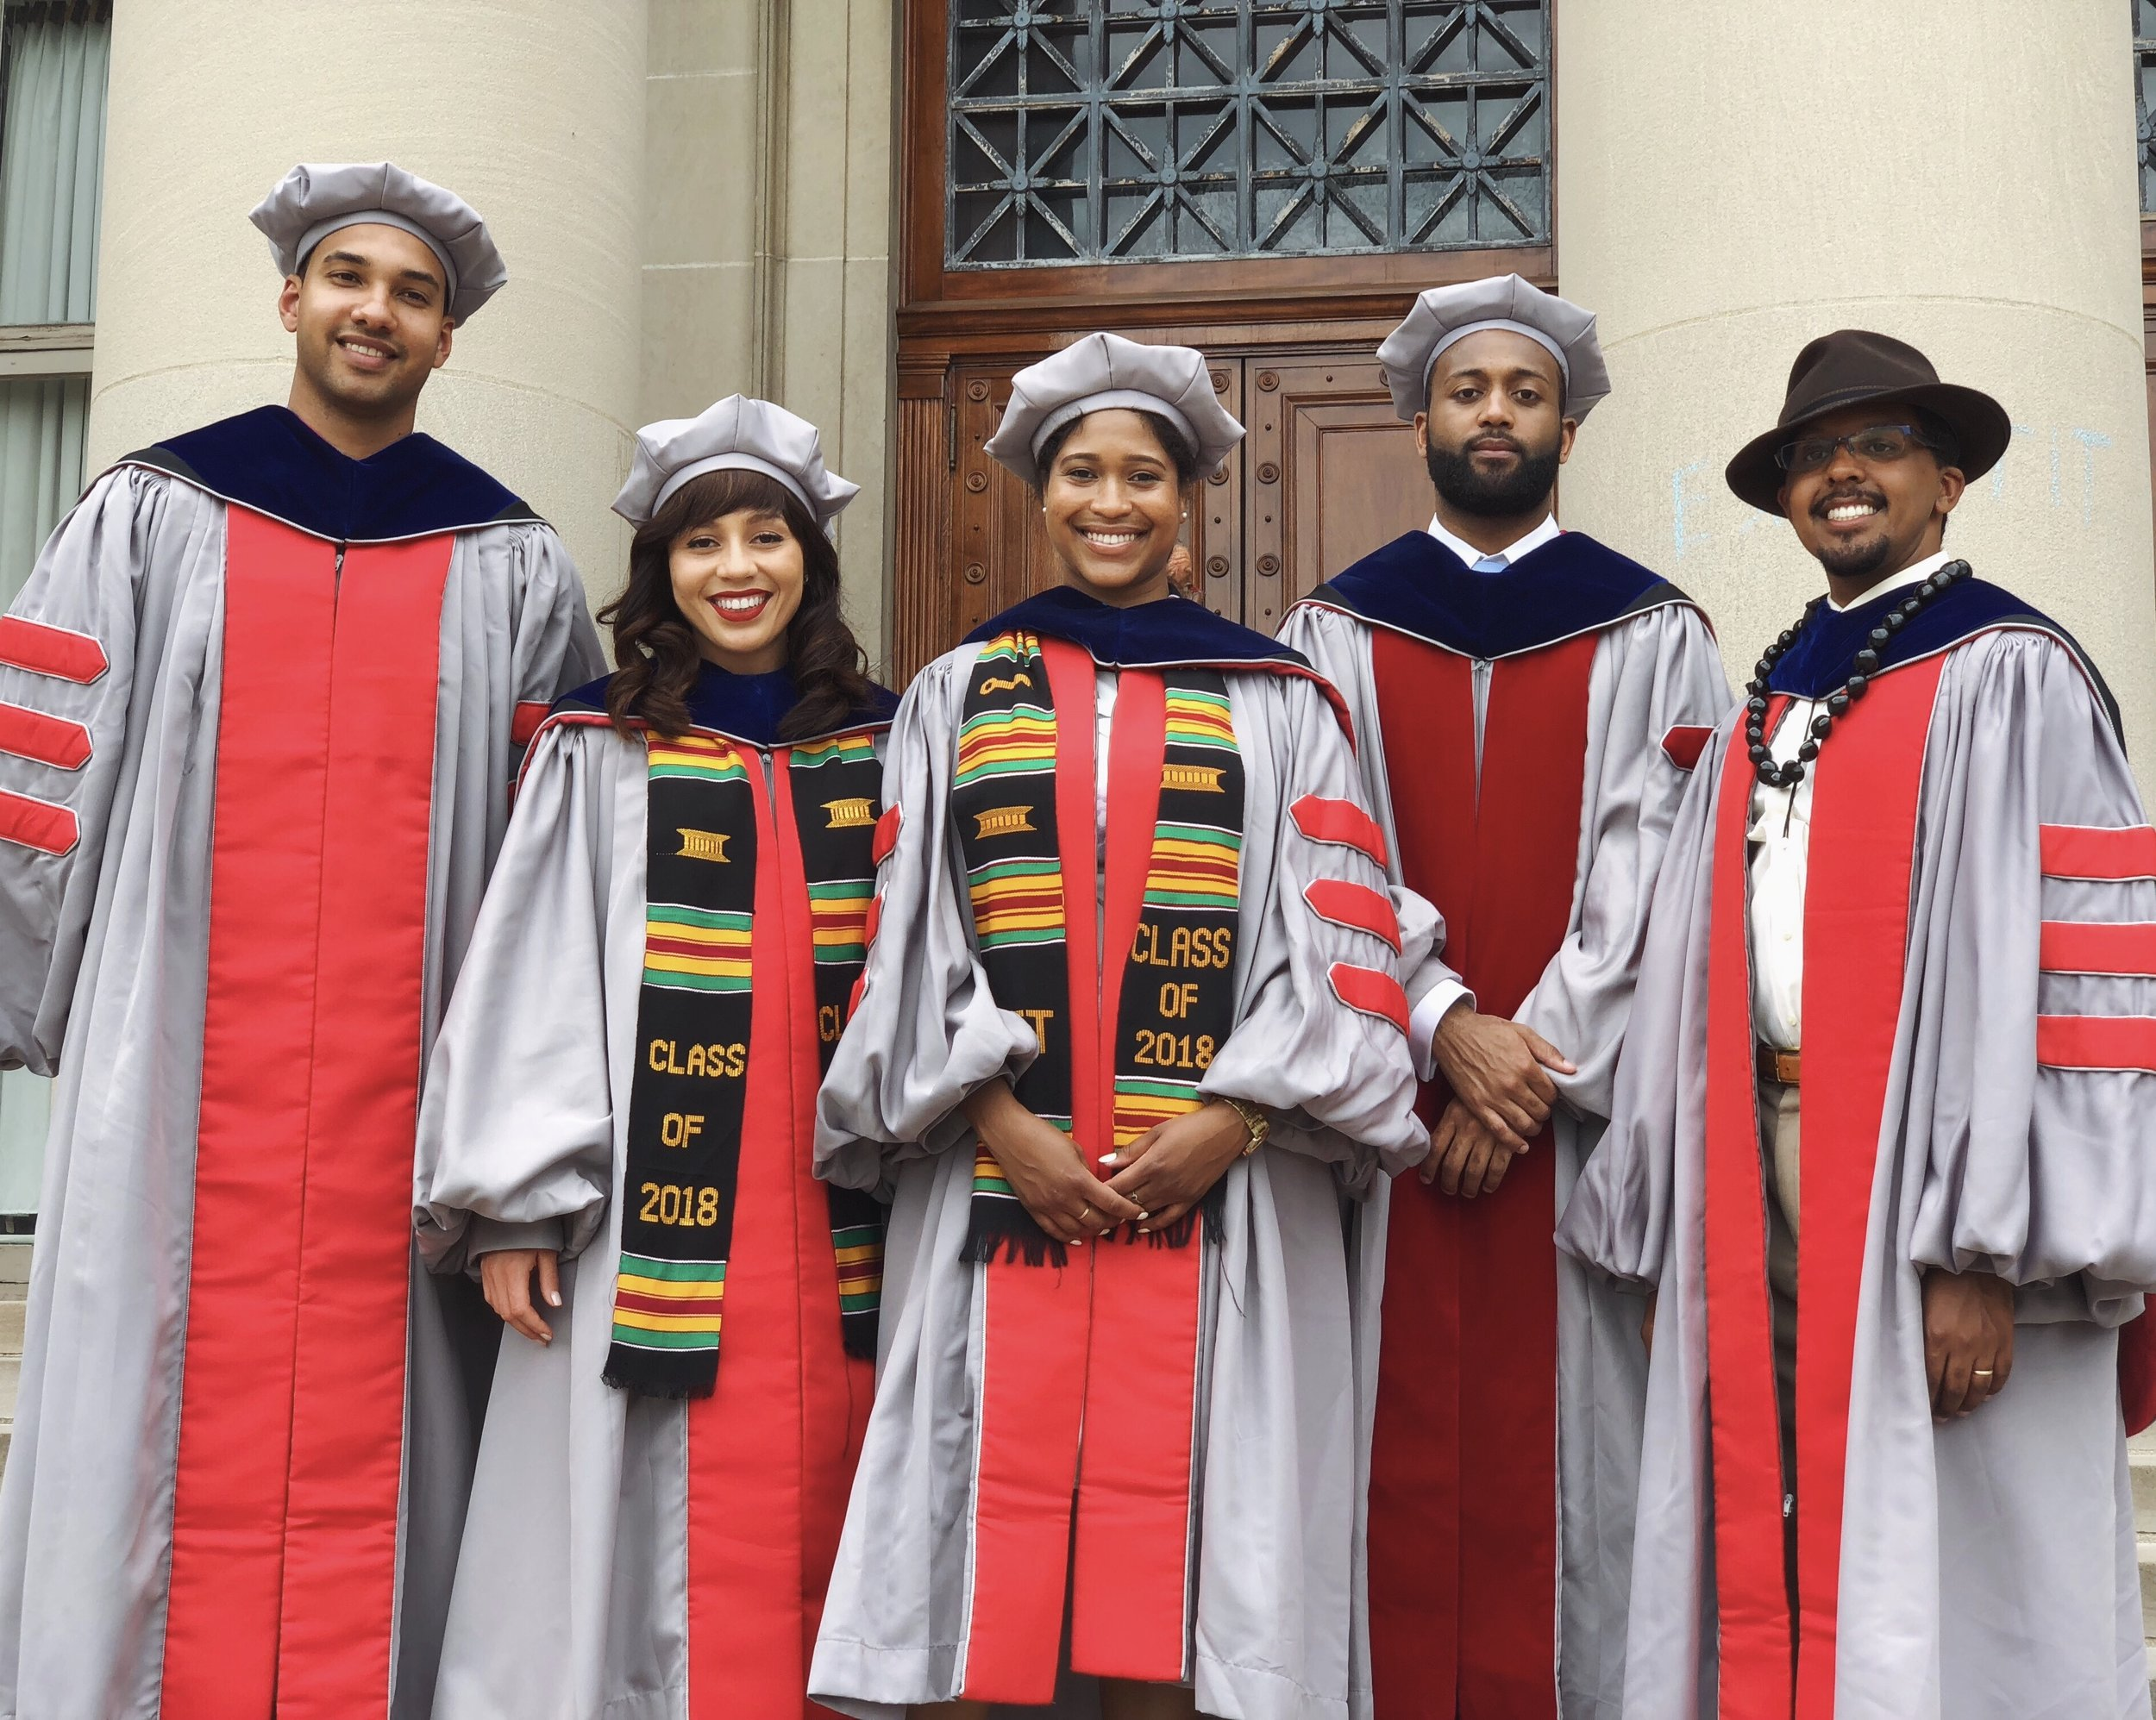 2018 black phd graduates (L-r) Charles mackin, electrical engineering and computer science; mareena robinson snowden, nuclear science and engineering; tsehai grell, chemistry; david hill, media arts & science; Andrew jones, Mechanical engineering